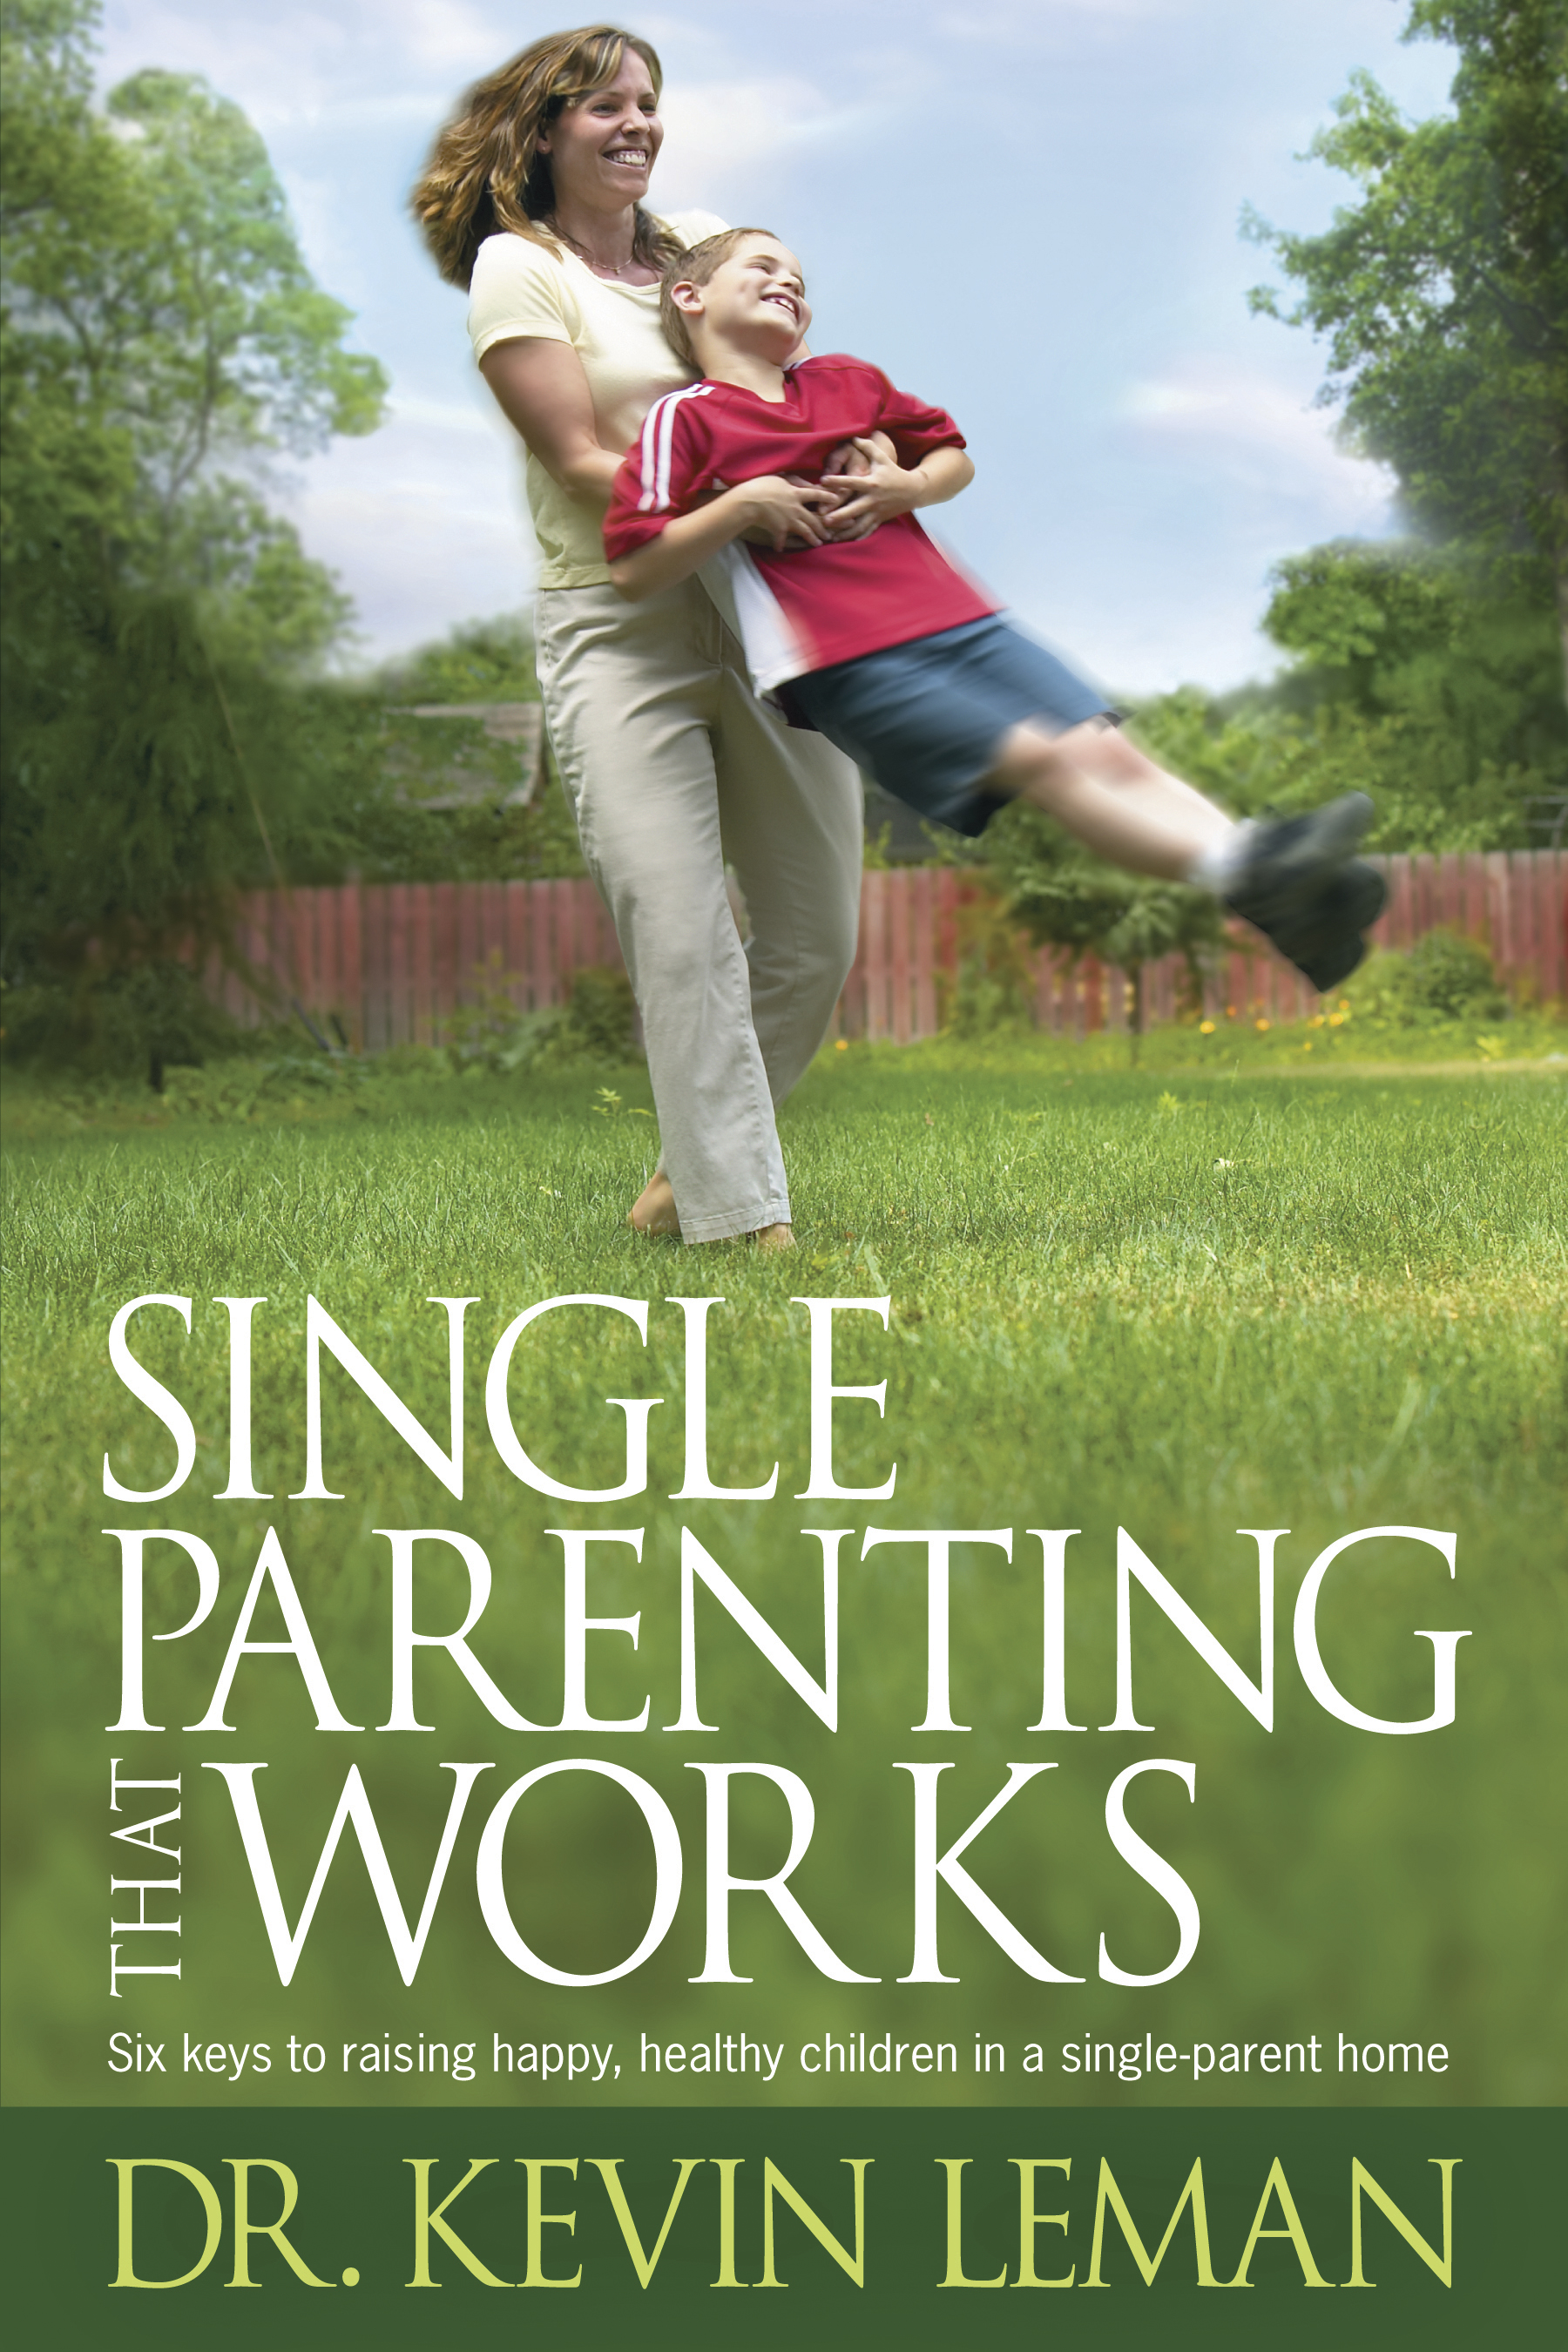 leming single parents Help & hope for single parents if you're a single parent, you're probably tired, overwhelmed and feeling a bit underappreciated that's why we created single & parenting groups—to share tips and parenting wisdom that will help you find rest, hope and encouragement.